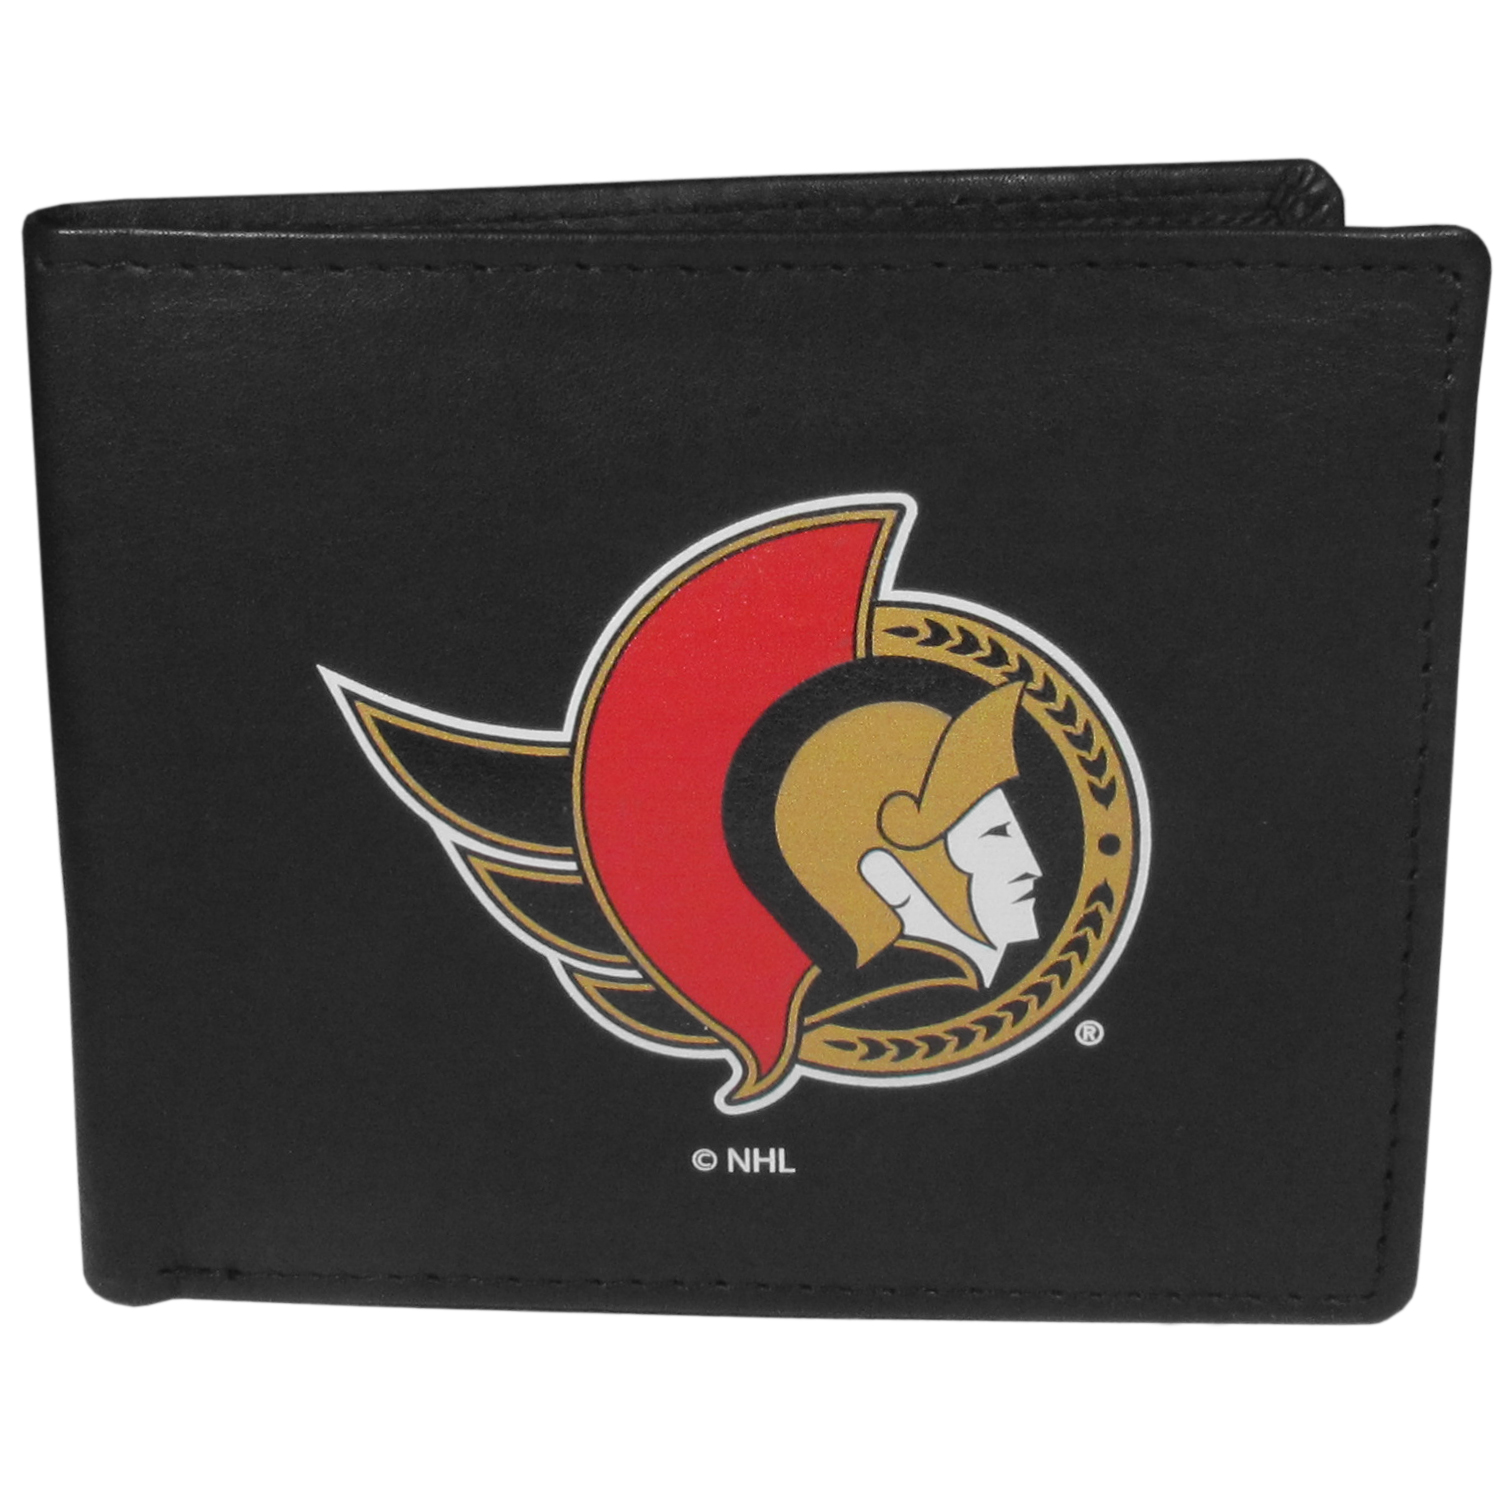 Ottawa Senators® Leather Bi-fold Wallet, Large Logo - Our classic fine leather bi-fold wallet is meticulously crafted with genuine leather that will age beautifully so you will have a quality wallet for years to come. The wallet opens to a large, billfold pocket and numerous credit card slots and has a convenient windowed ID slot. The front of the wallet features an extra large Ottawa Senators® printed logo.